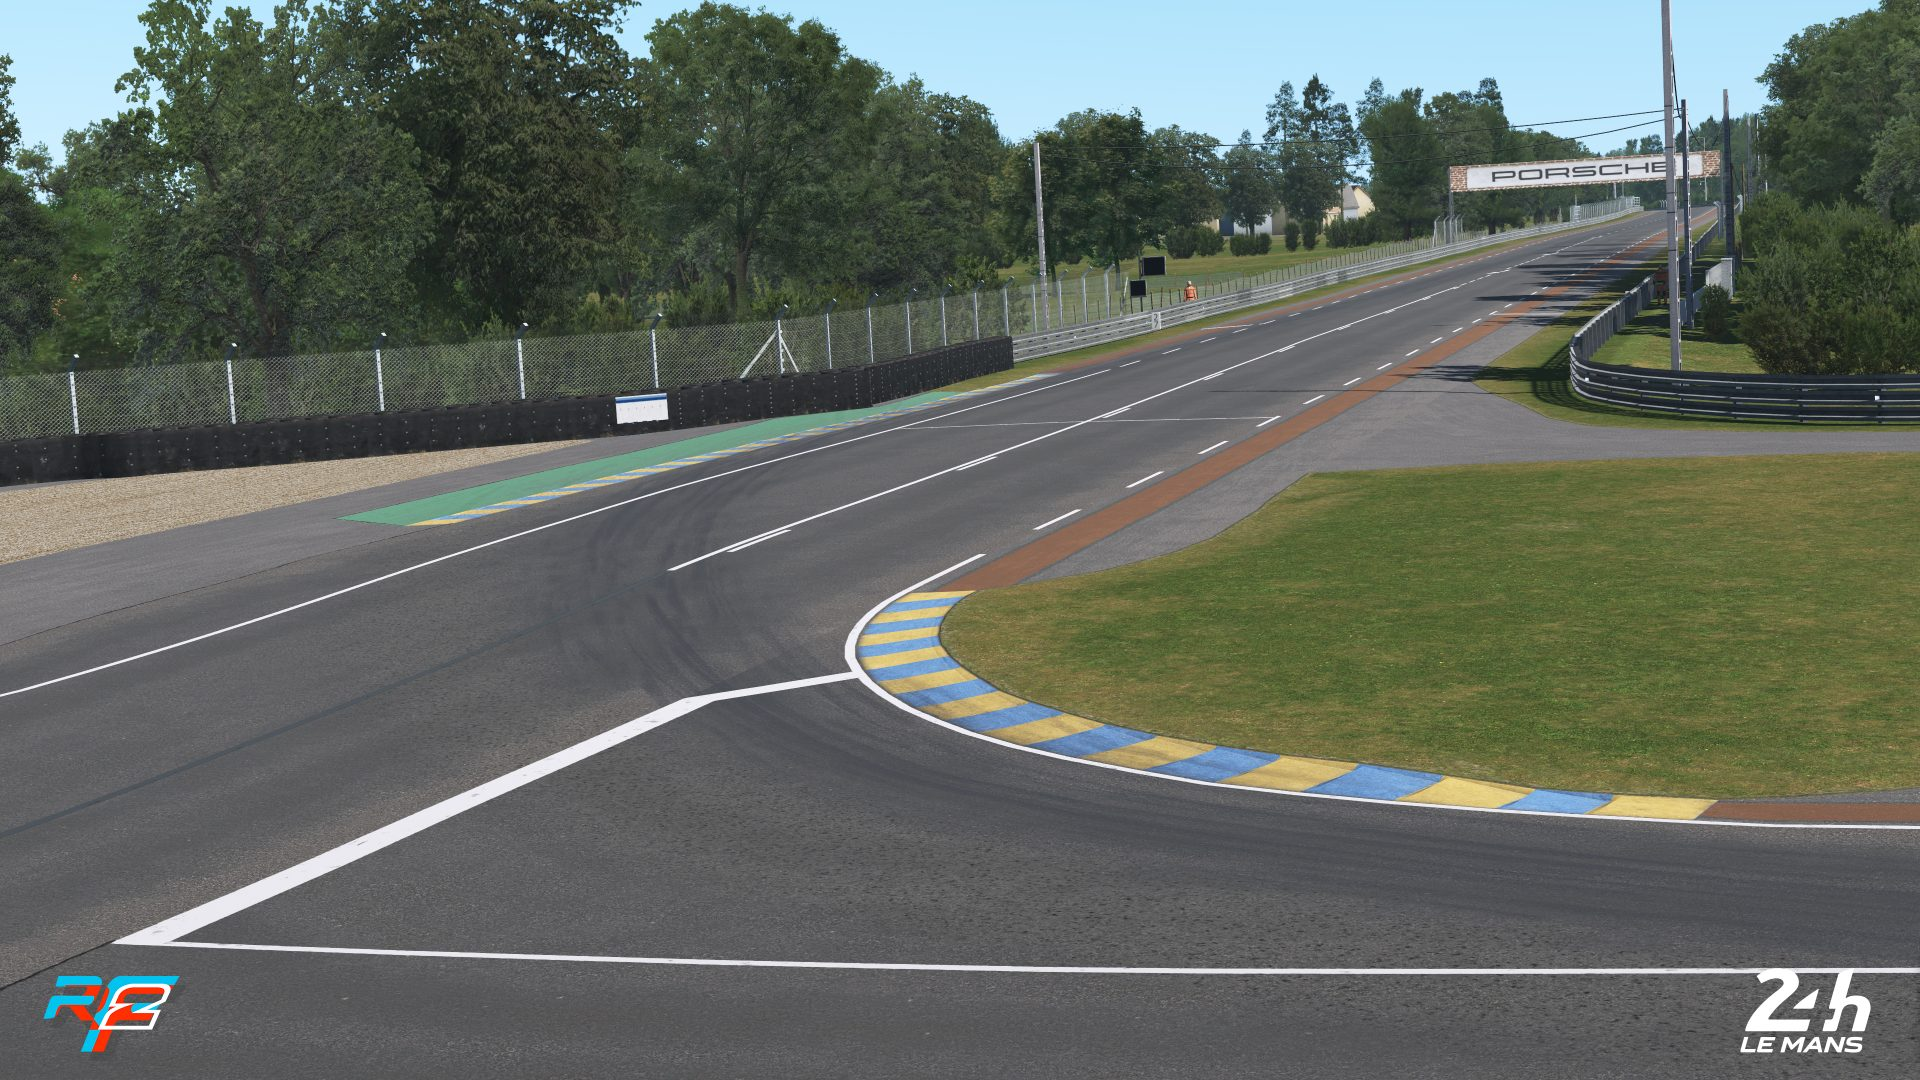 Le-Mans-track-guide-021-1920x1080.jpg